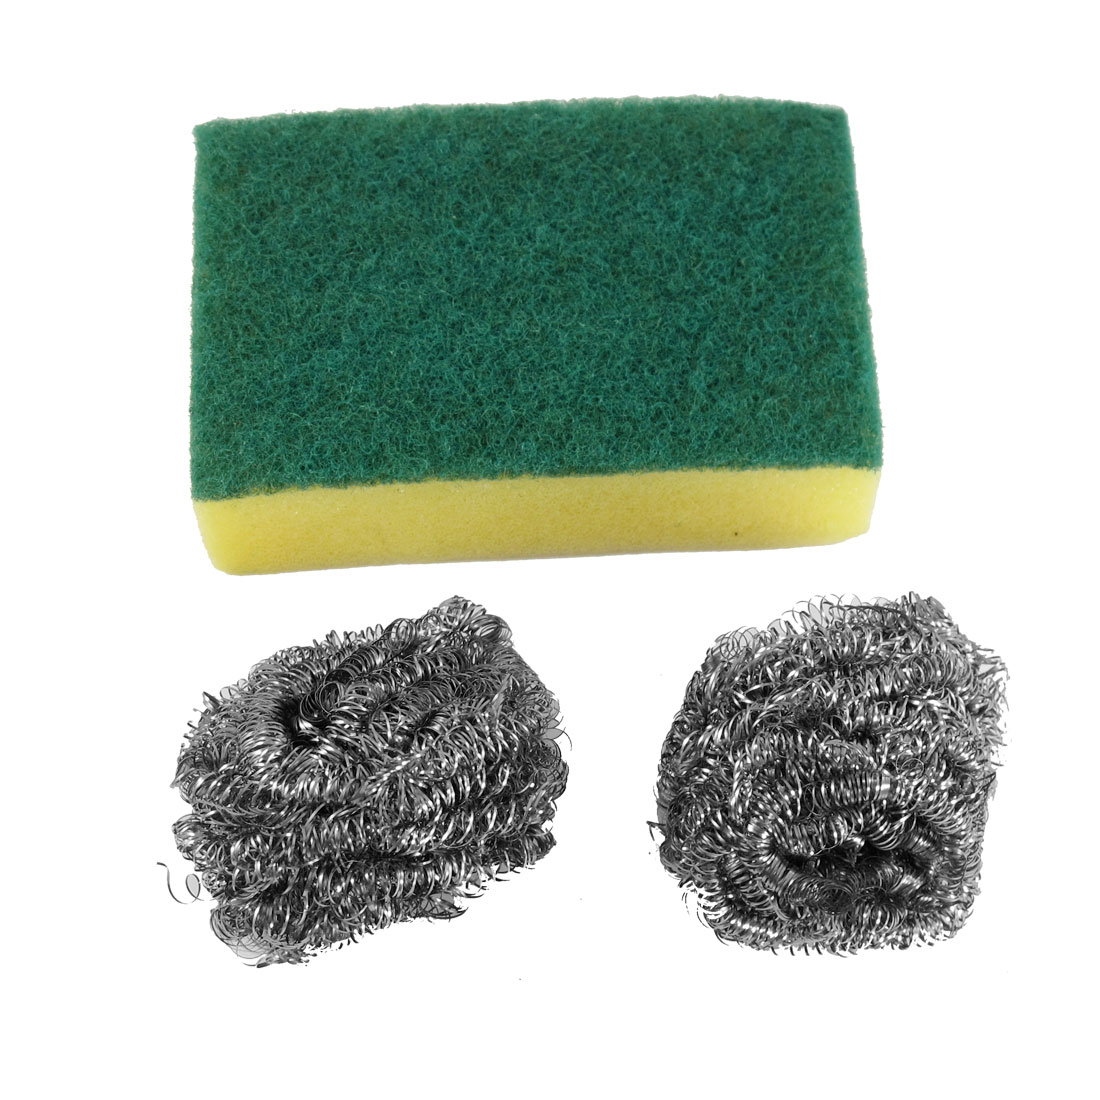 Cleaner Tool Scrub Sponge Pad Yellow Green w 2 Pcs Metal Ball